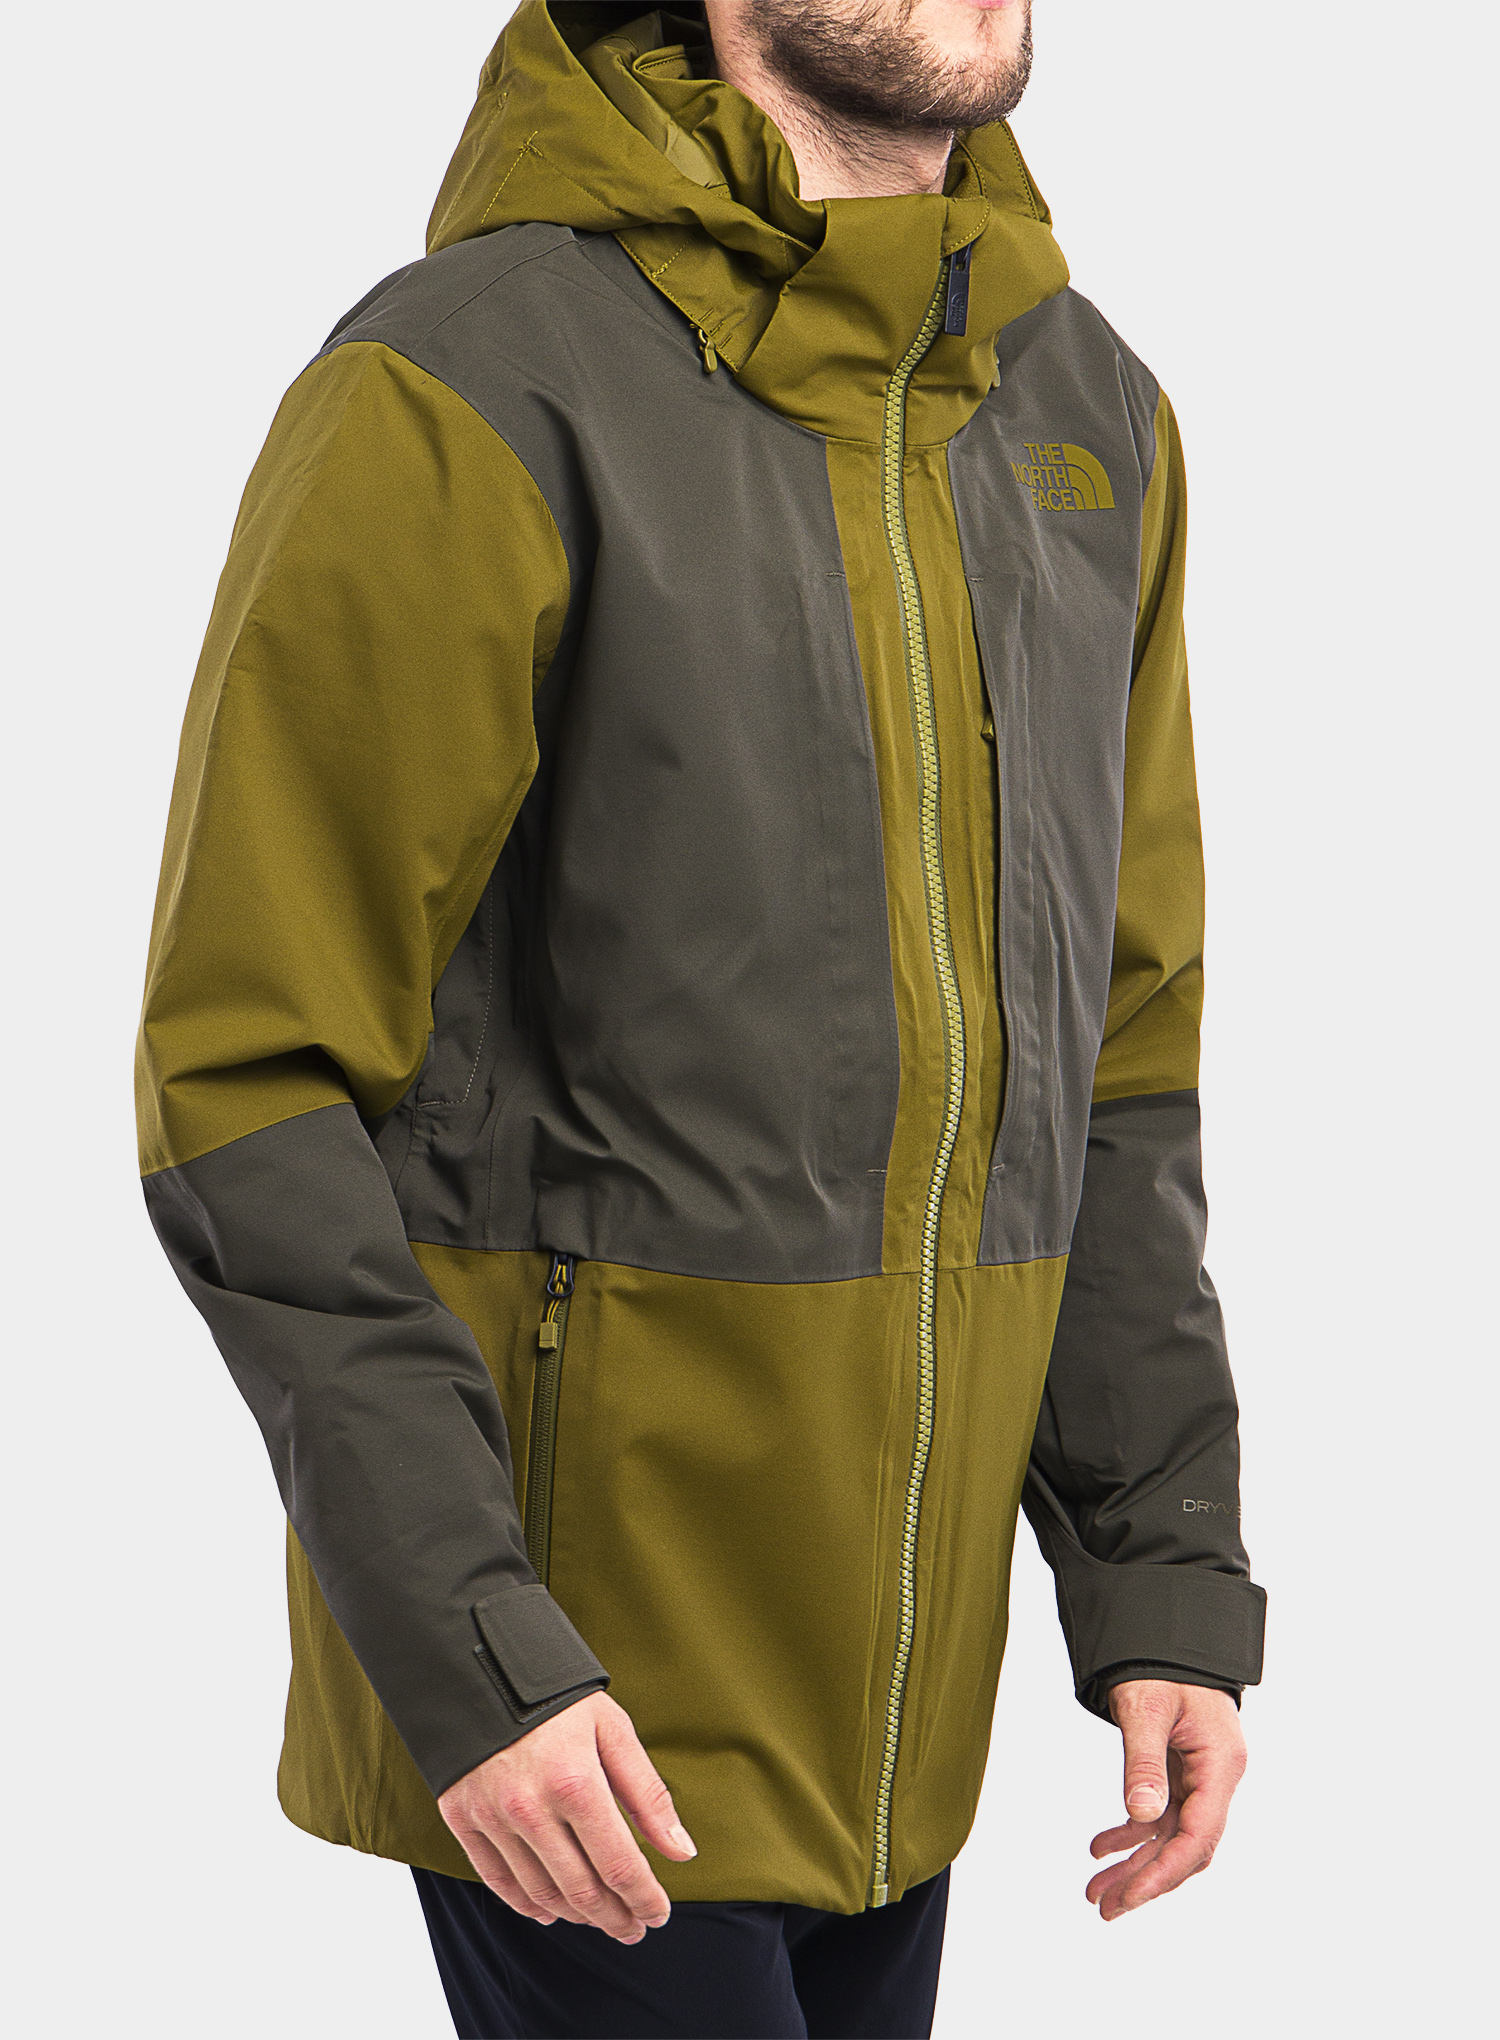 Kurtka The North Face Chakal Jacket - fir green/new taupe green - zdjęcie nr. 7